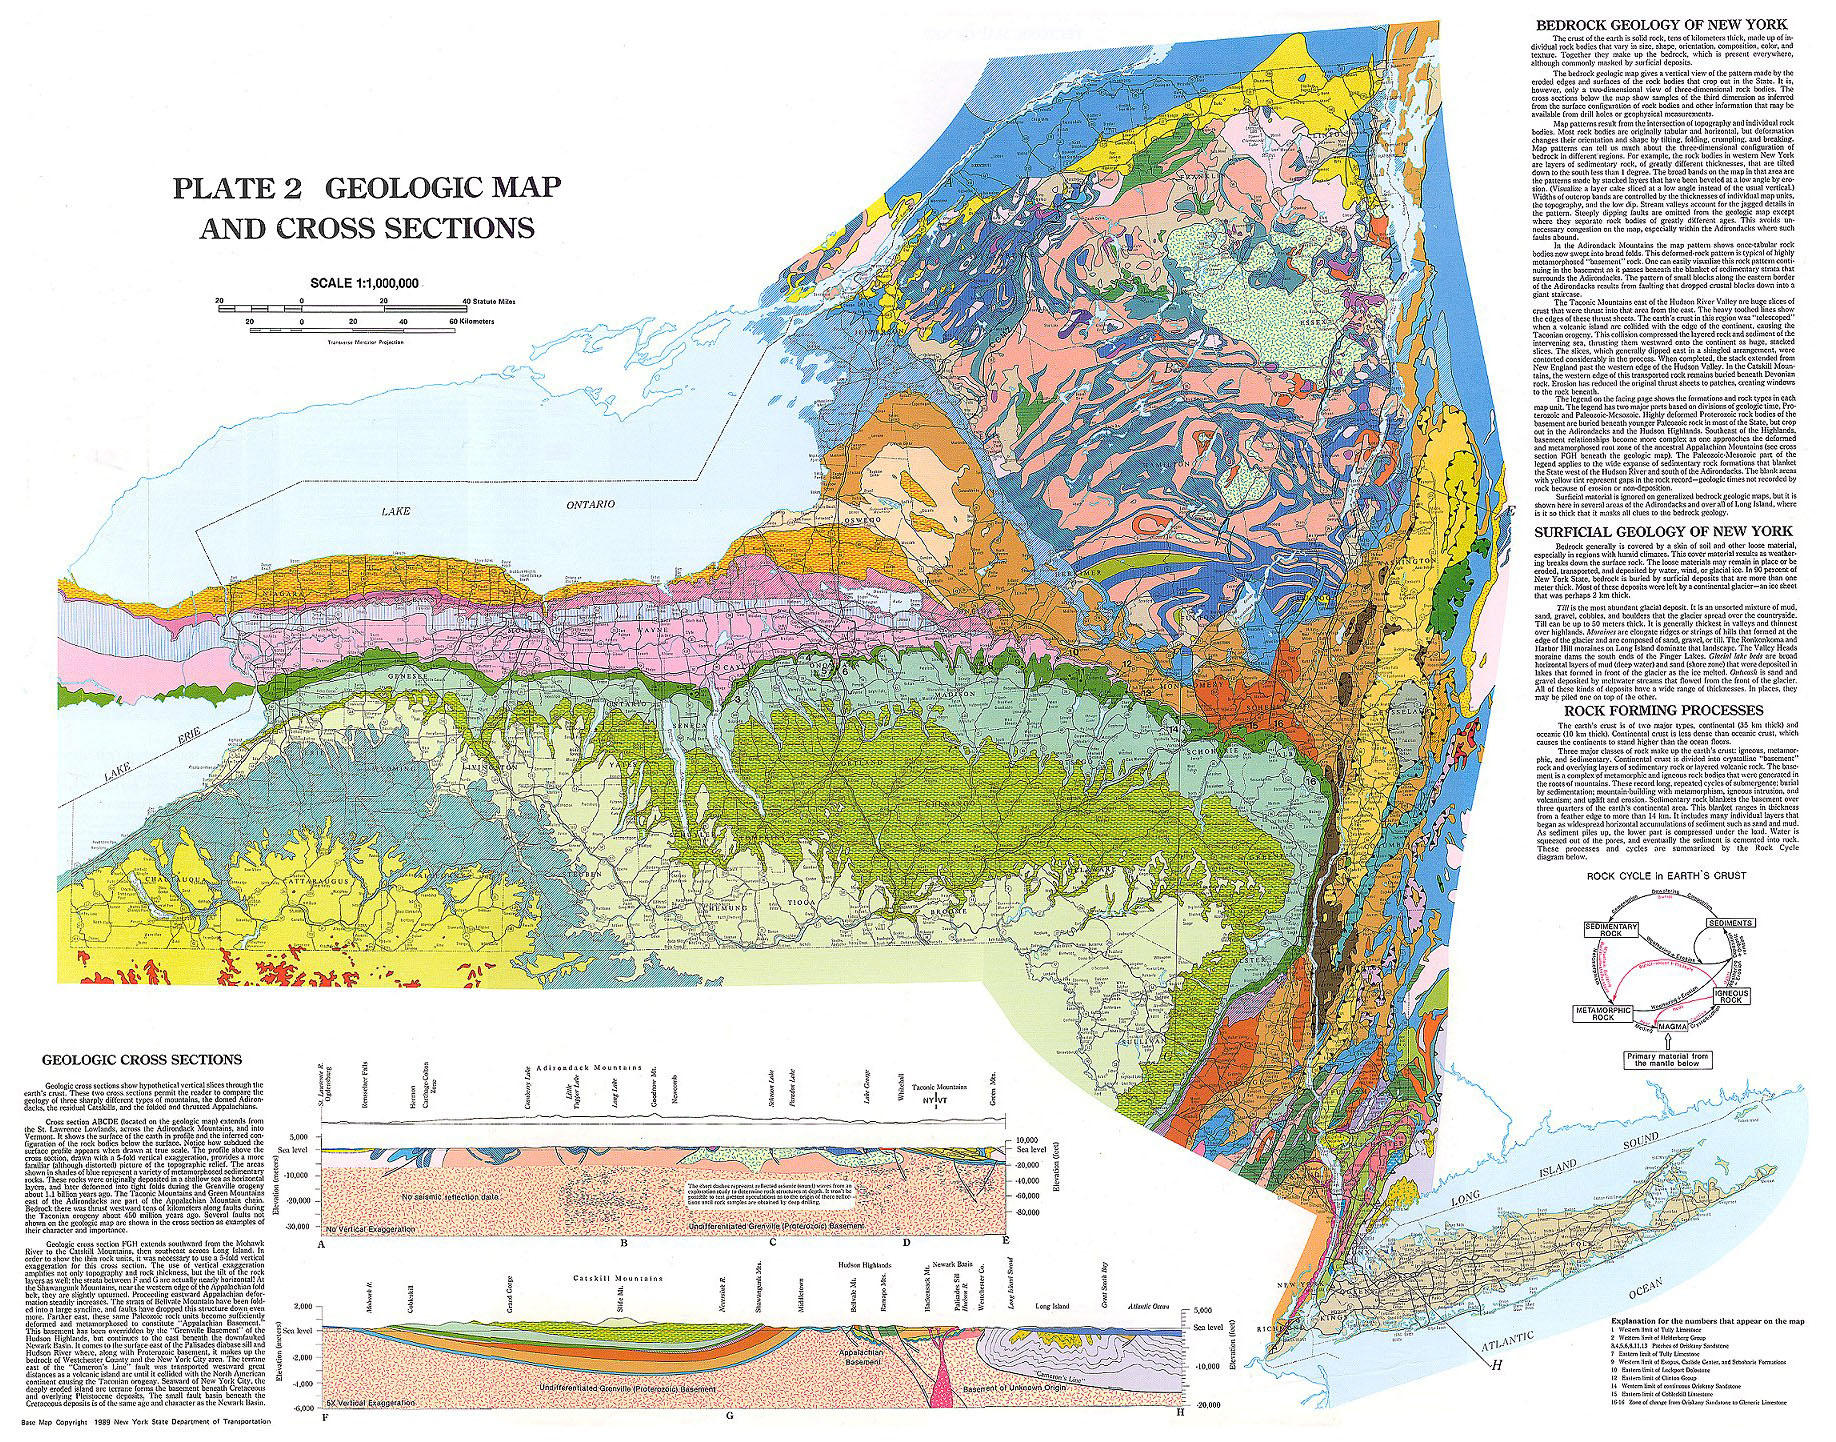 New york state geologic map see map details from ublib.buffalo.edu